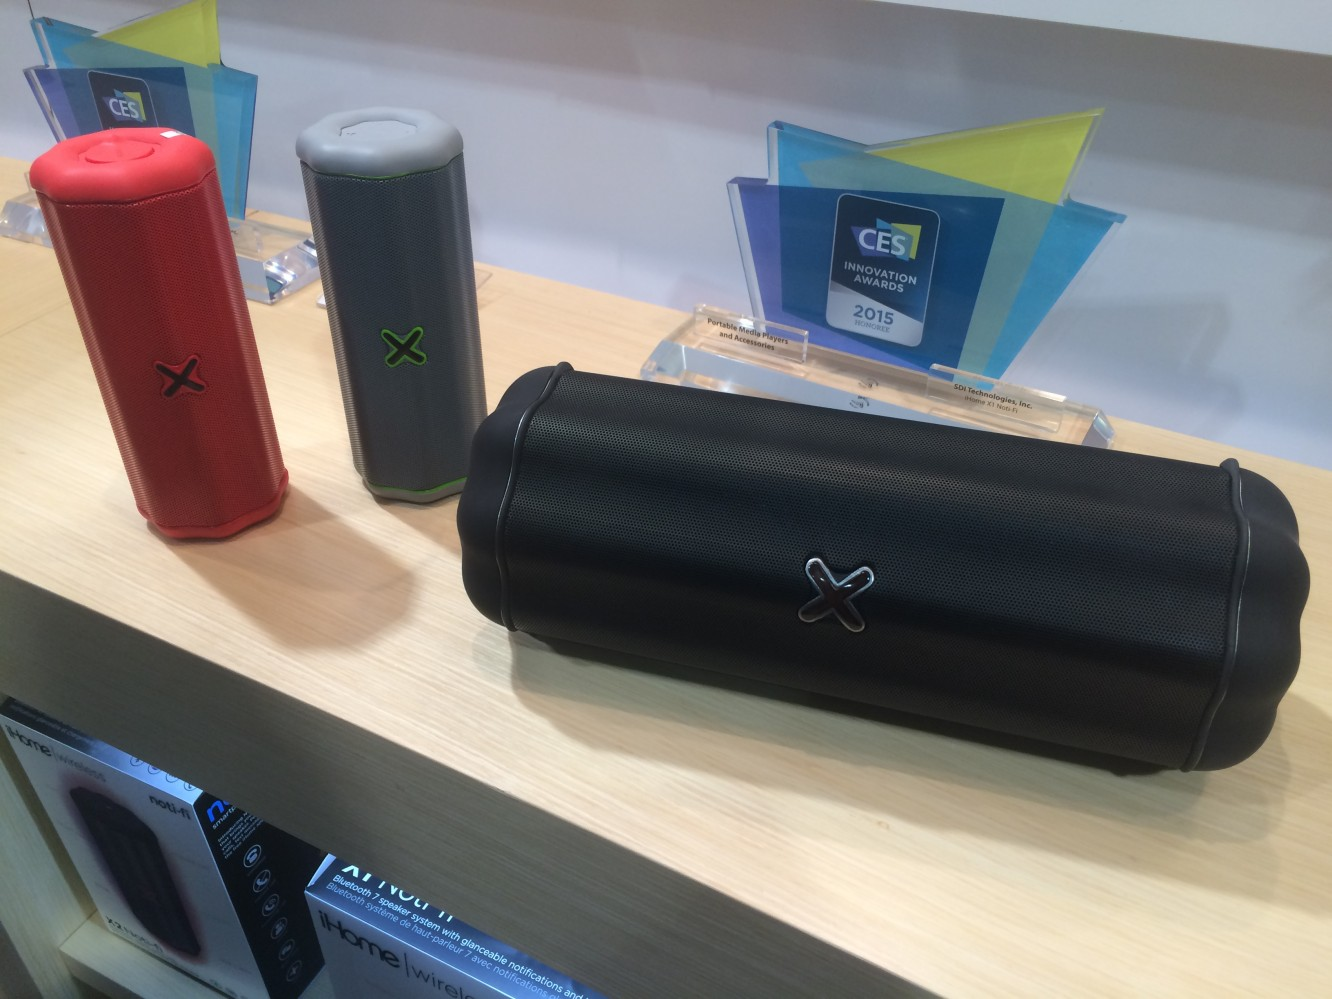 CES 2015: Day One 1